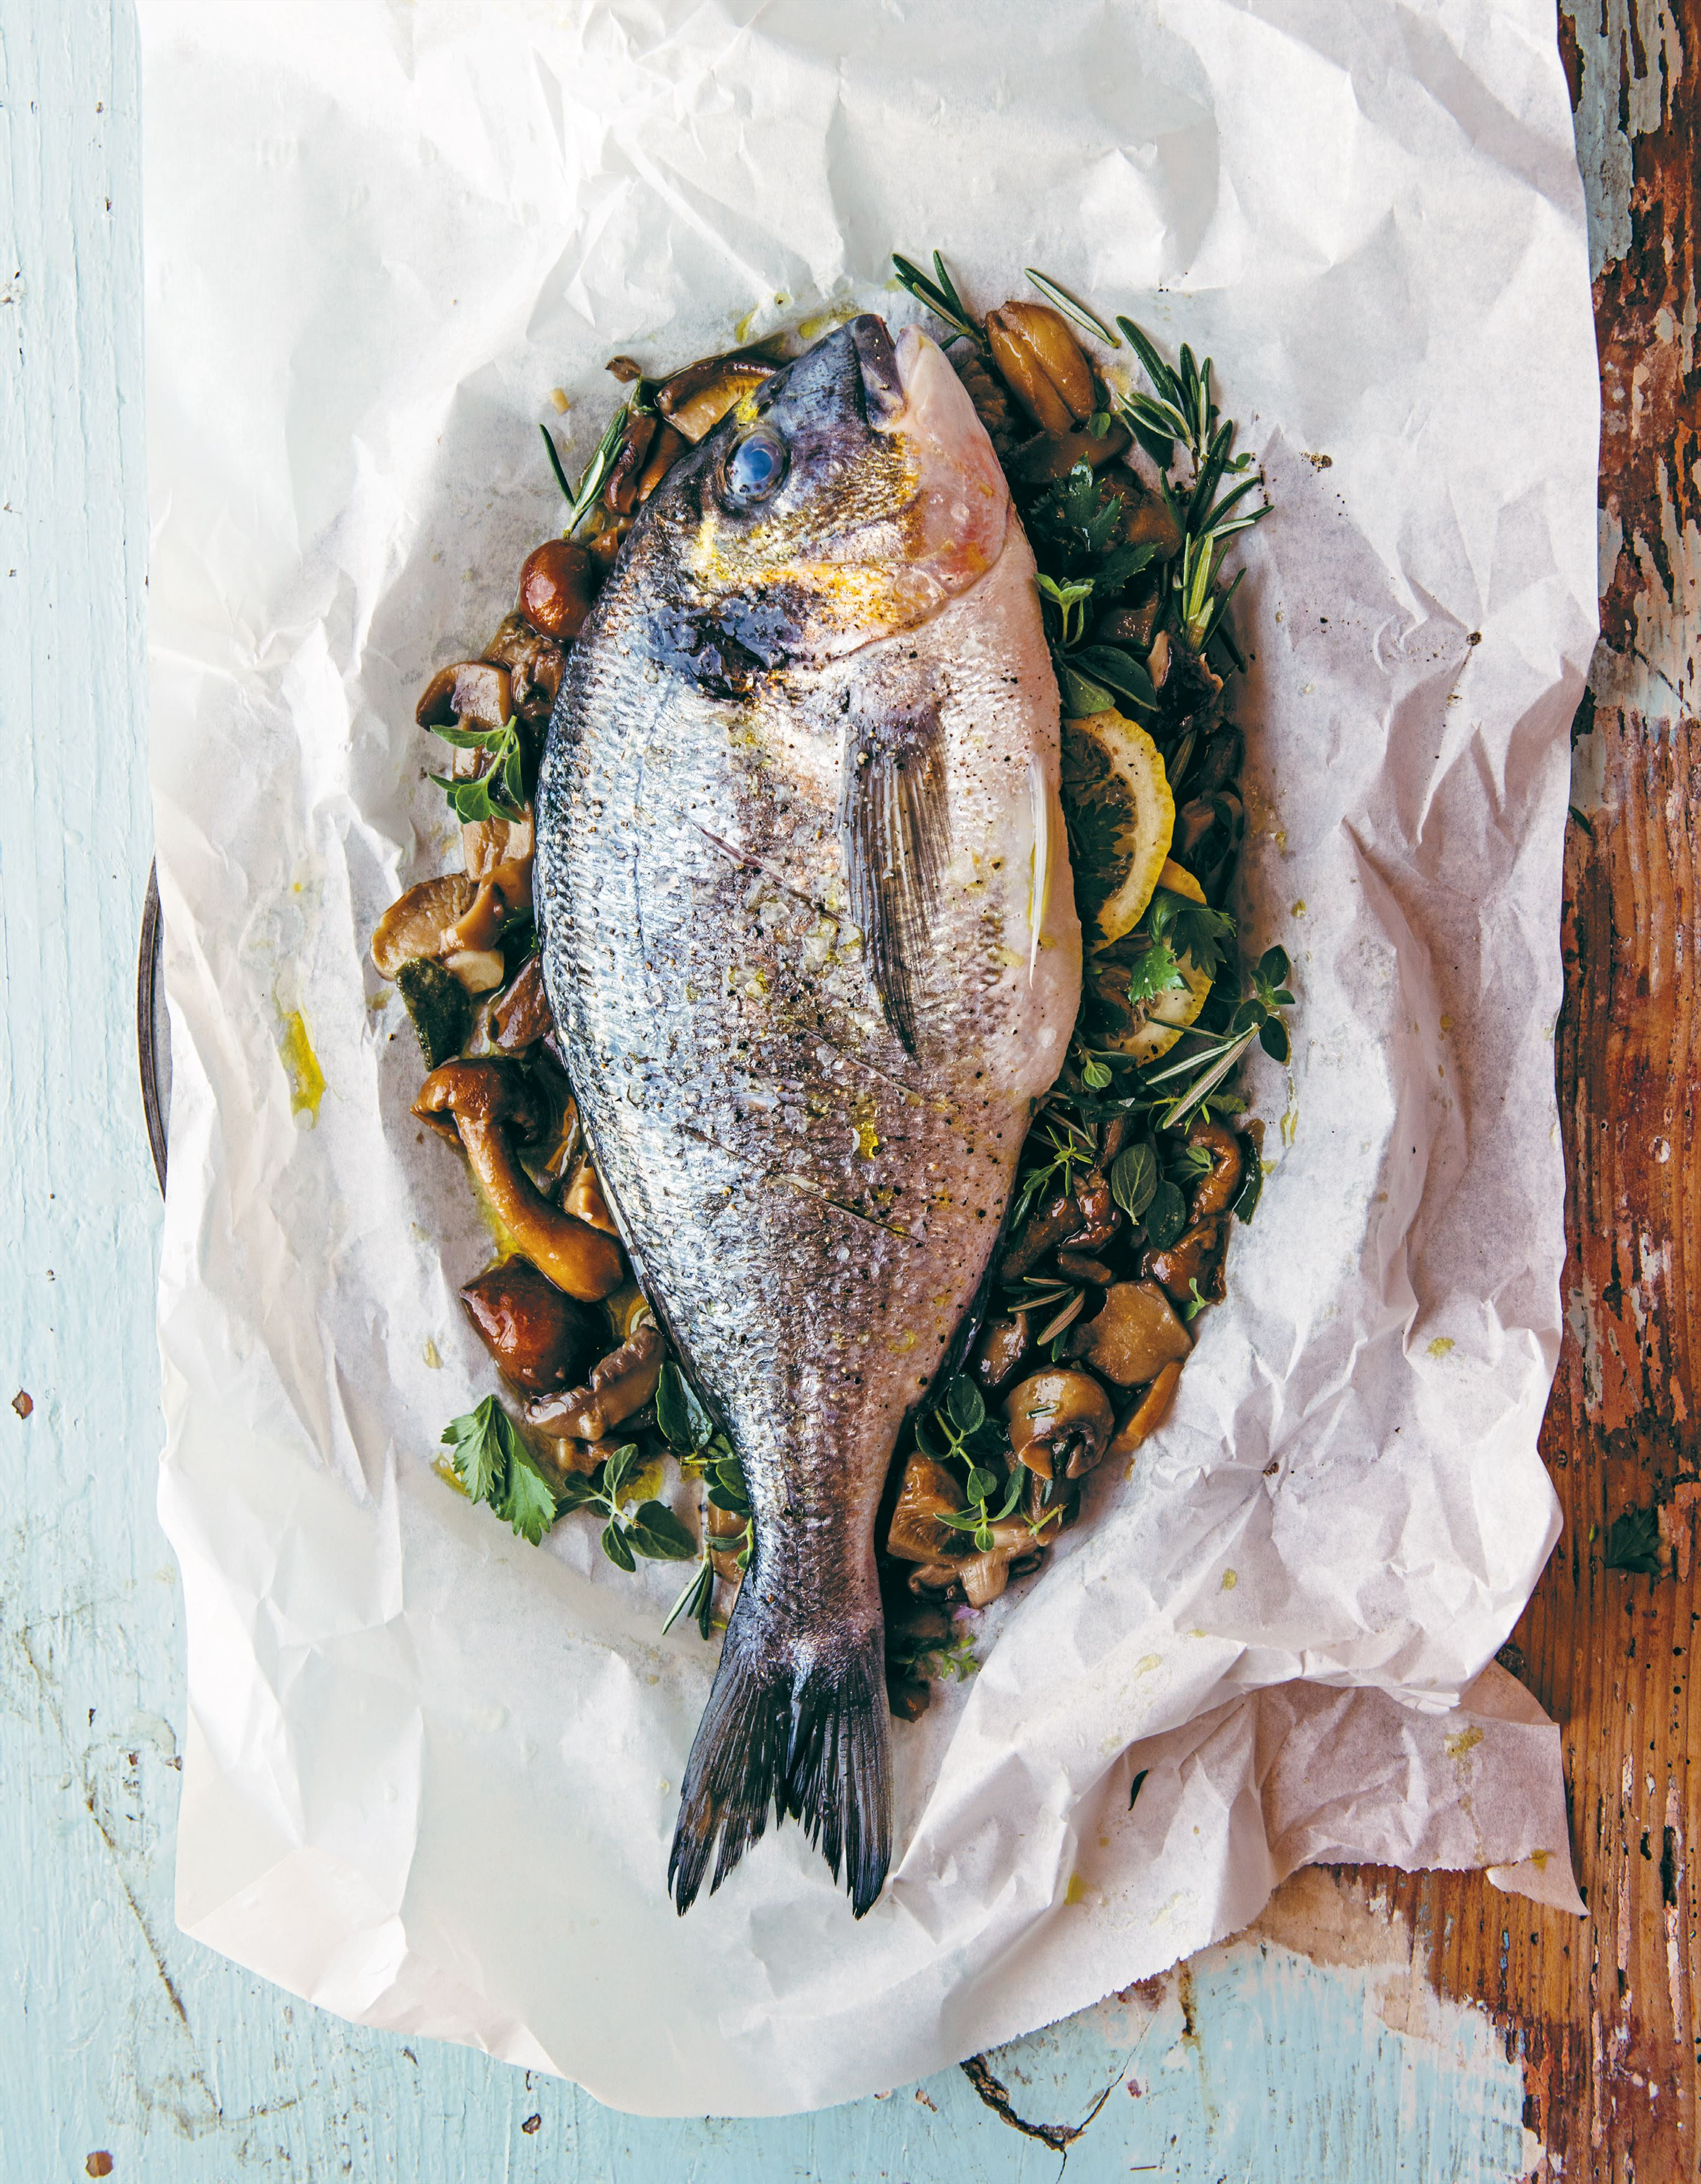 Paper-baked sea bream with mushrooms